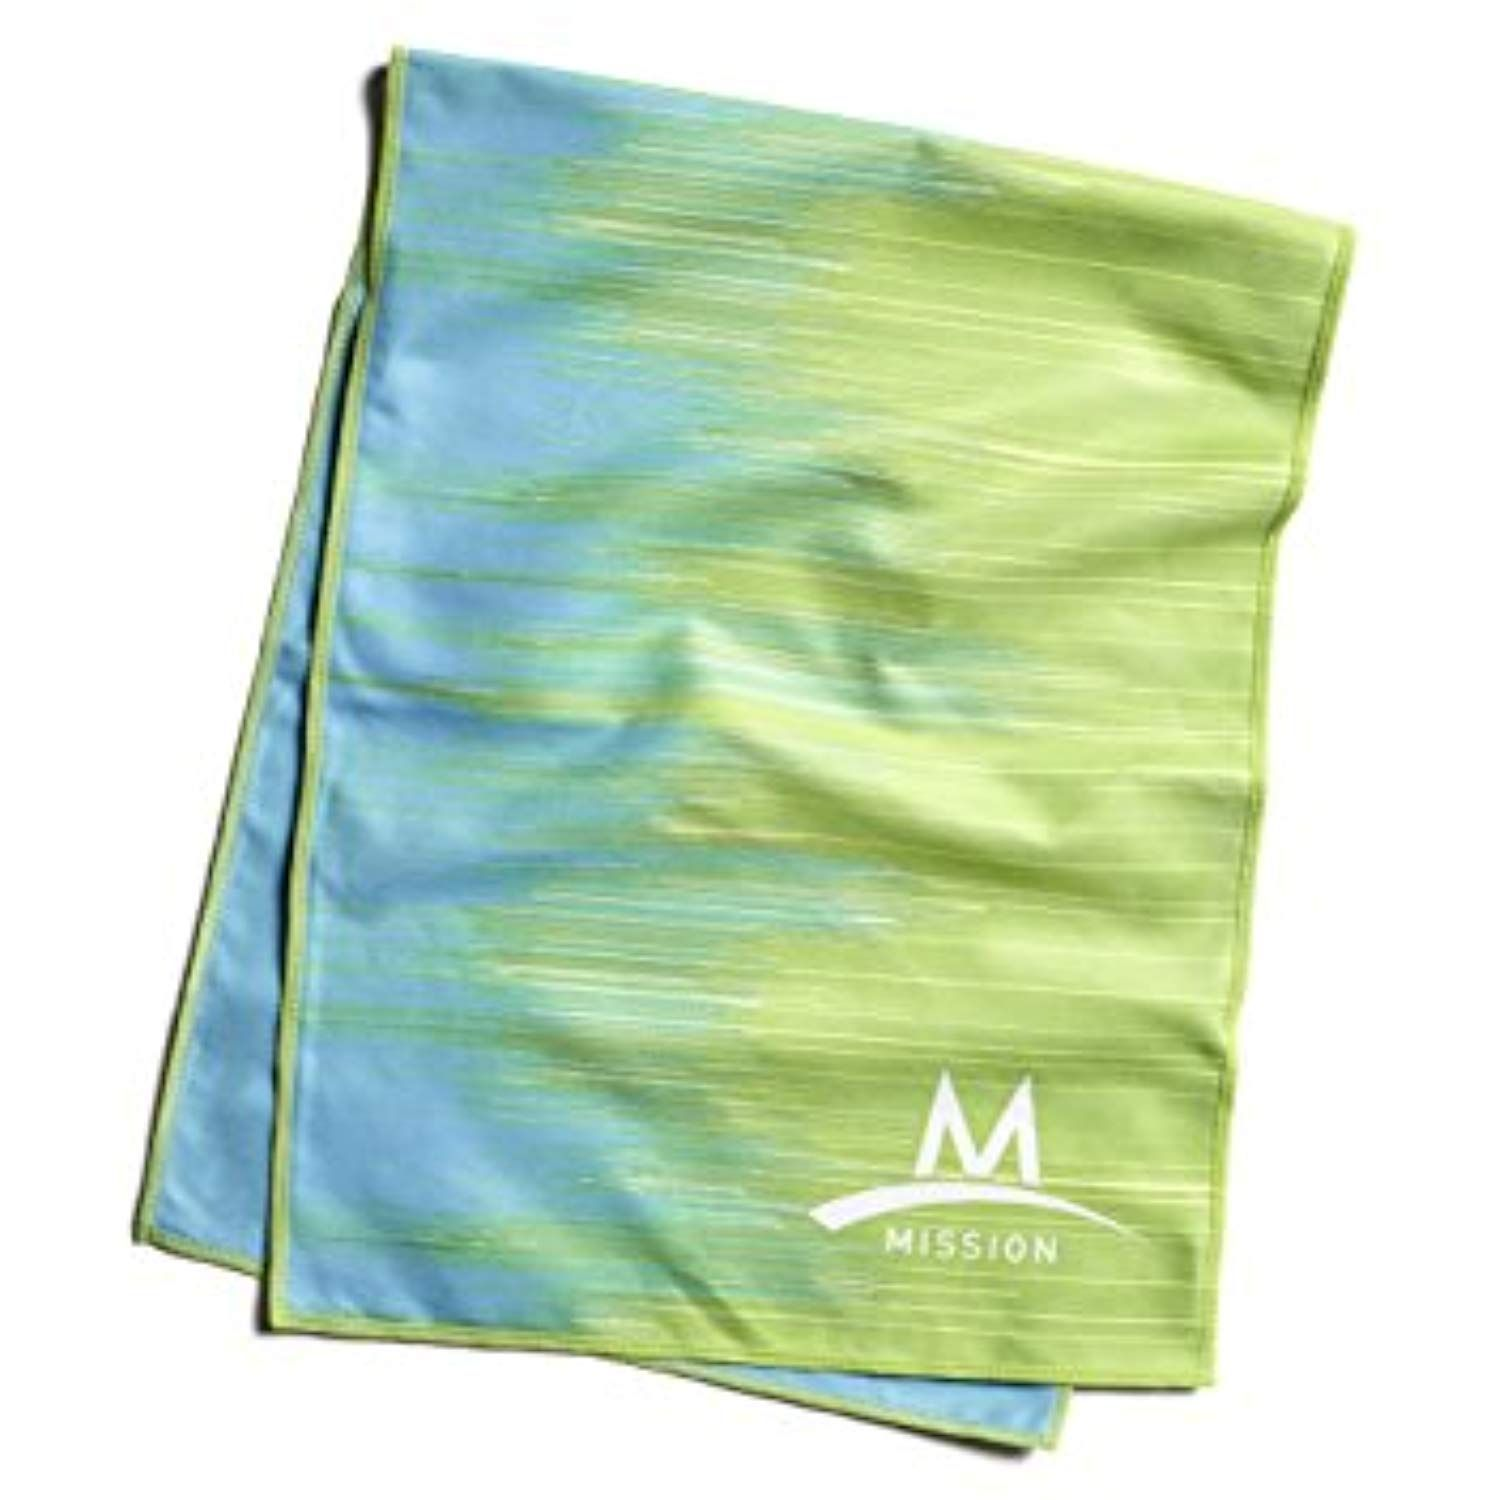 Mission Enduracool Microfiber Cooling Towel Price 2 58 Free